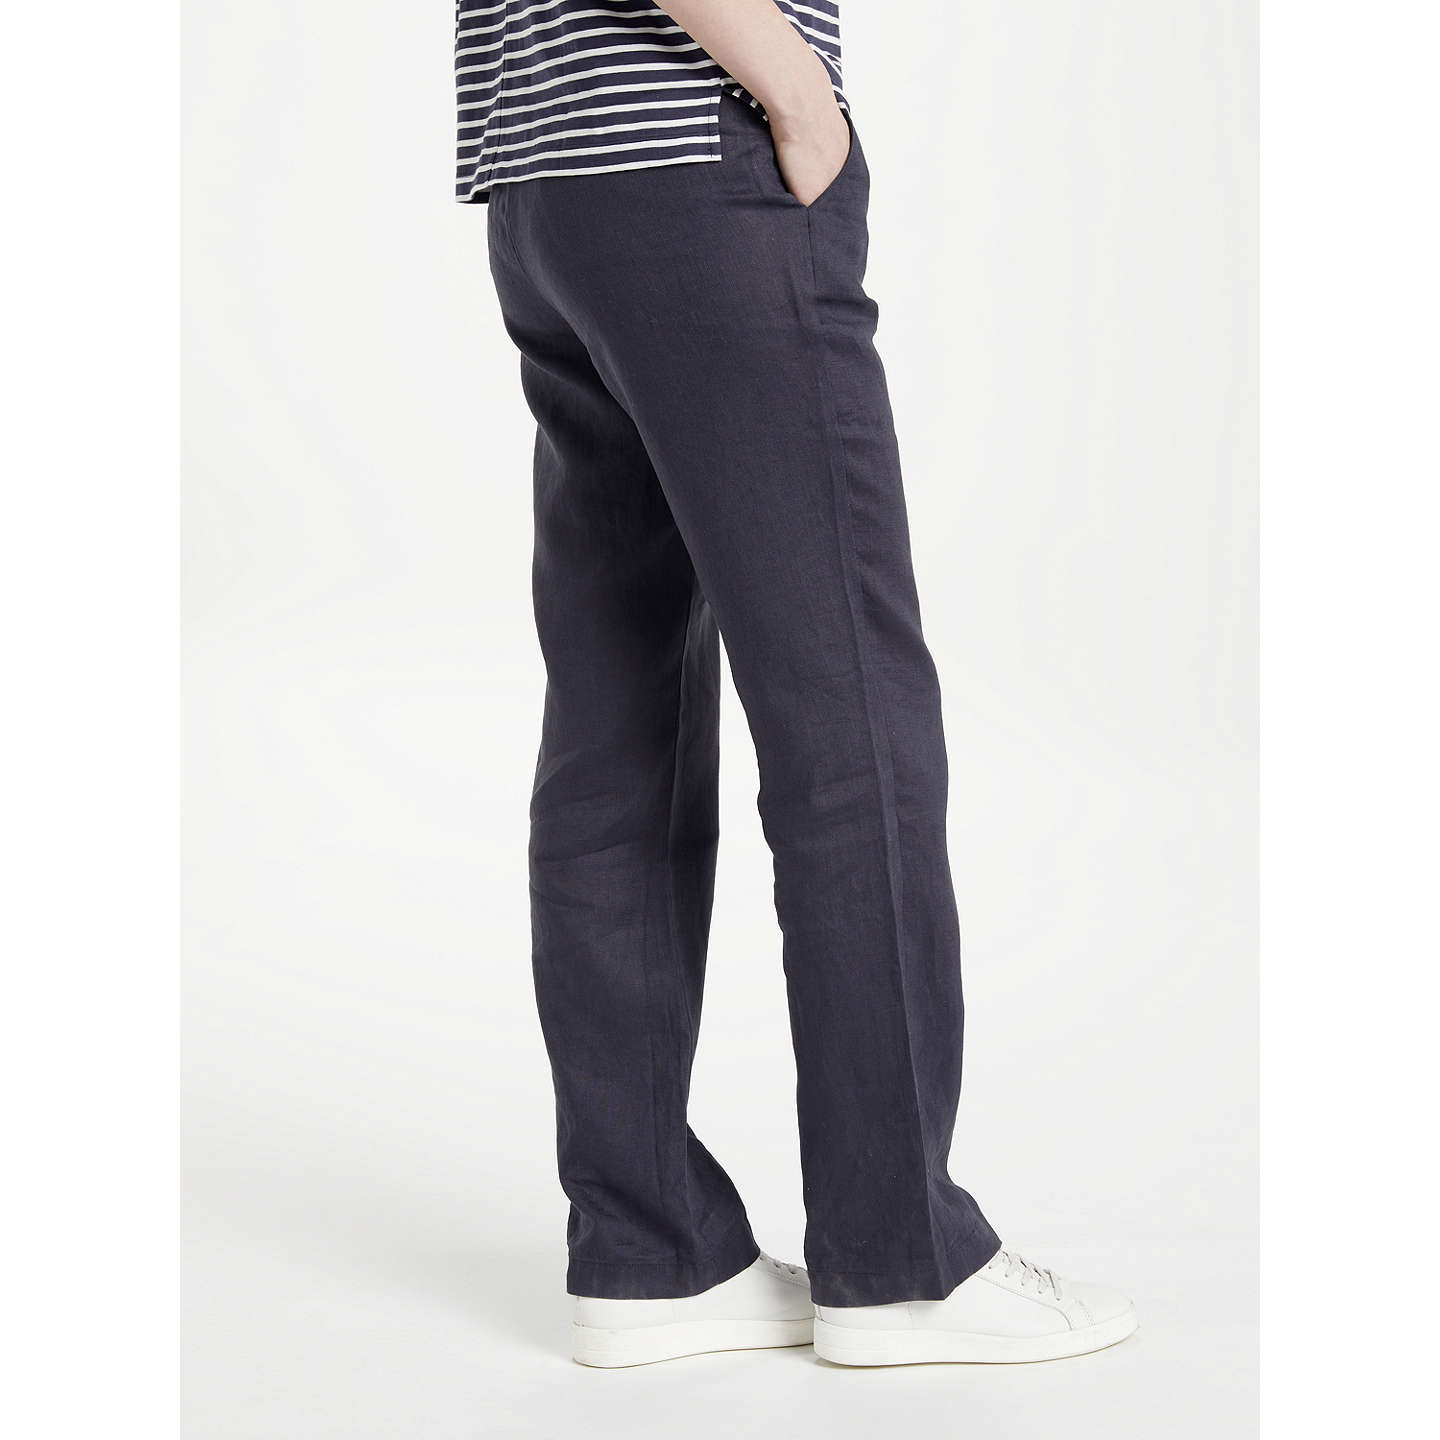 BuyJohn Lewis Straight Leg Linen Trousers, Navy, 8 Online at johnlewis.com